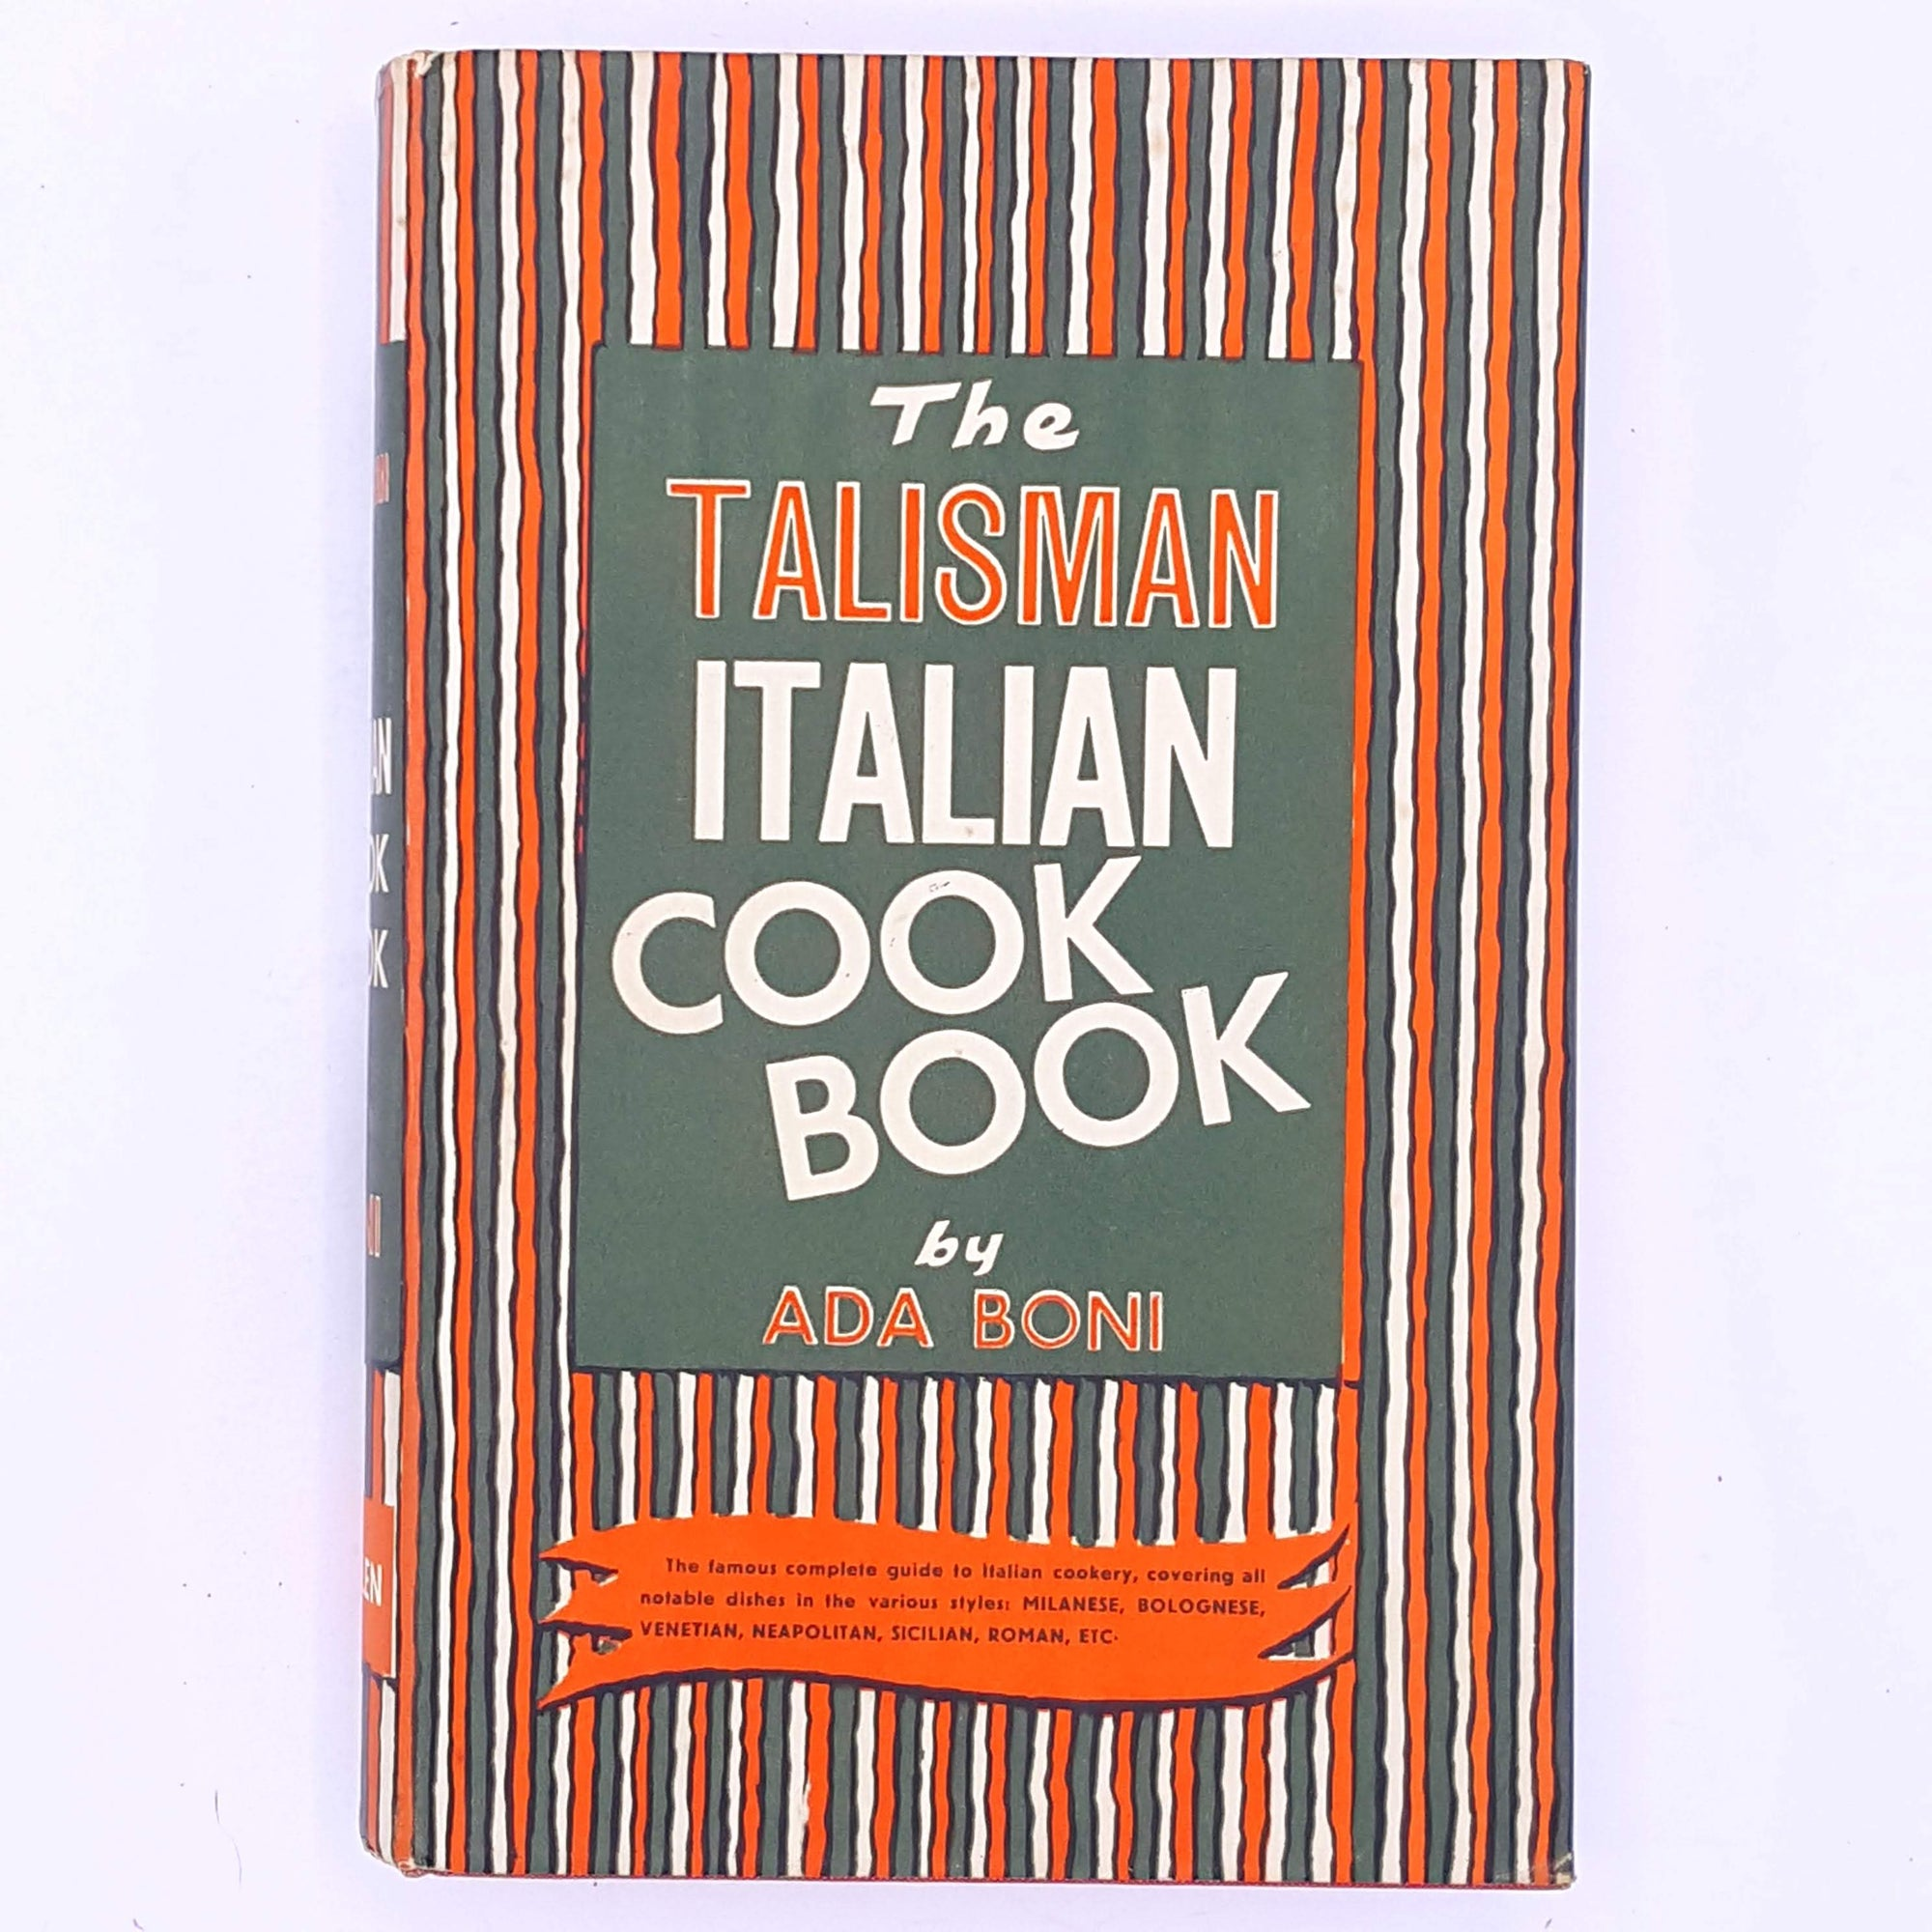 The Talisman Italian Cook Book by Ada Boni